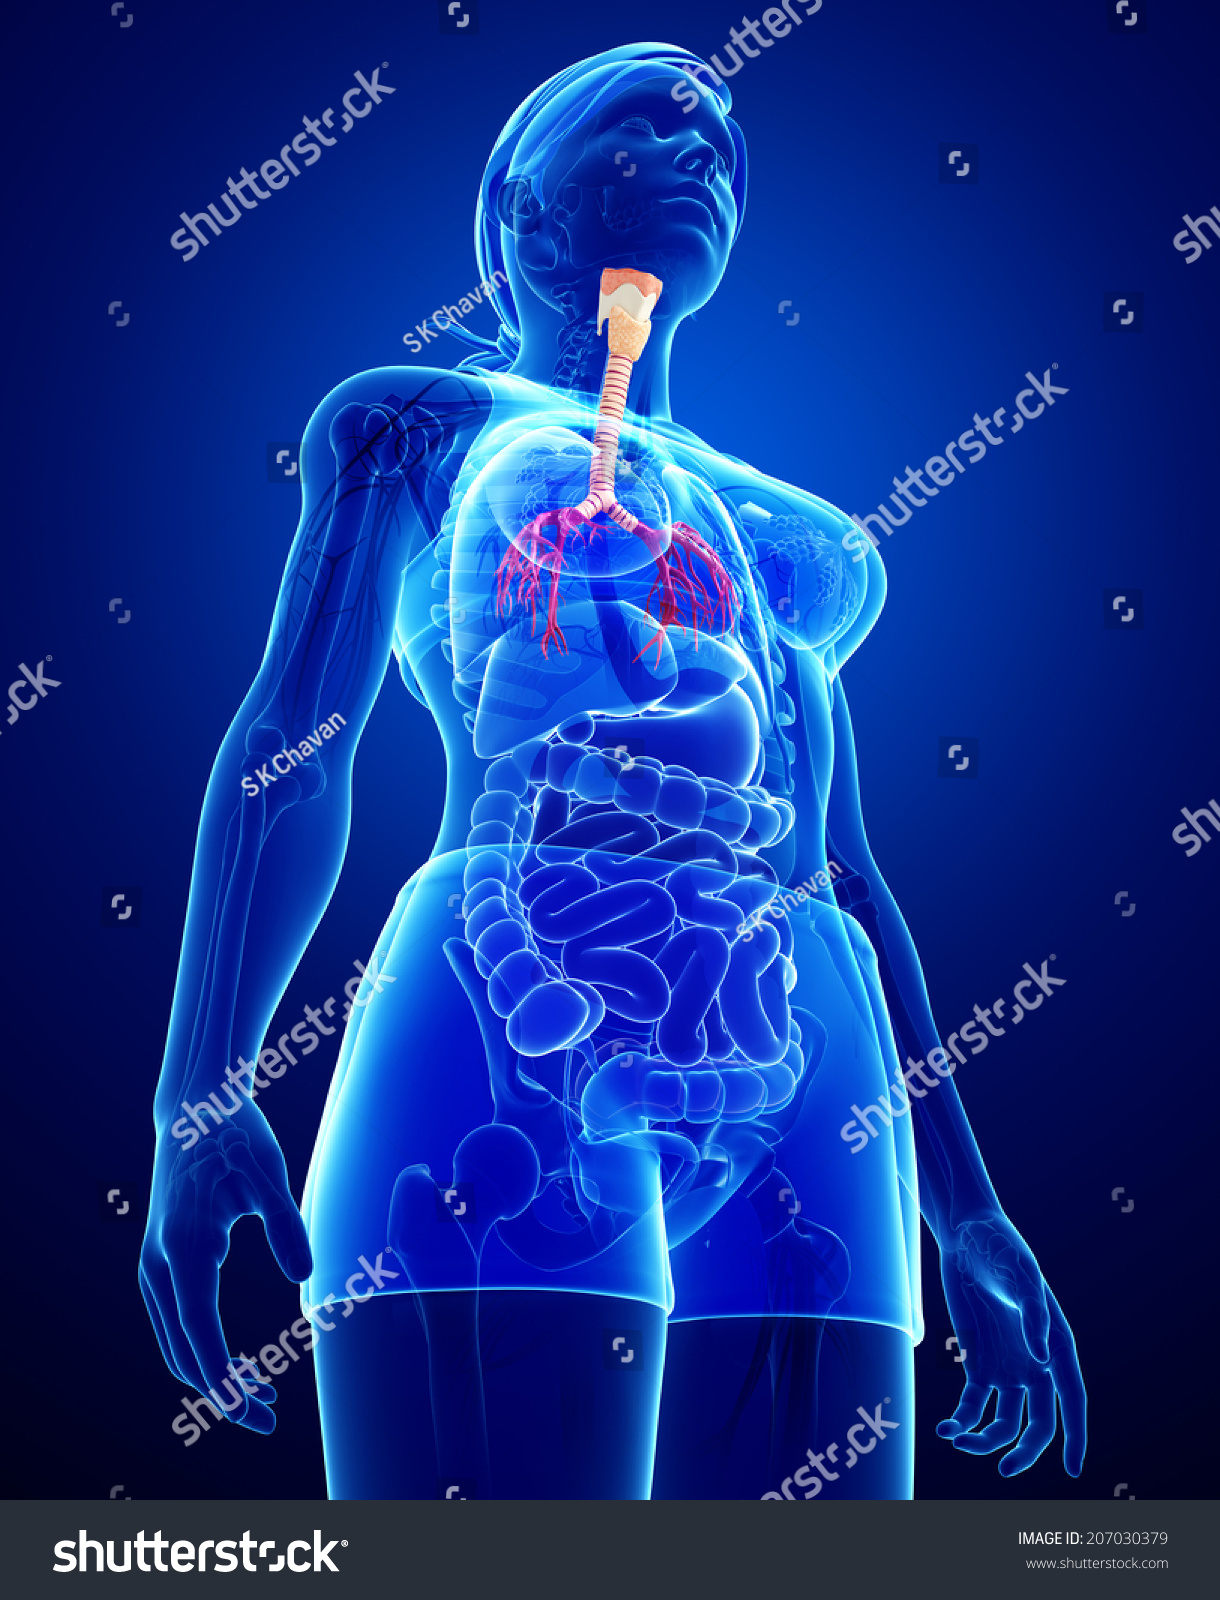 Illustration Female Throat Anatomy Stock Illustration 207030379 ...